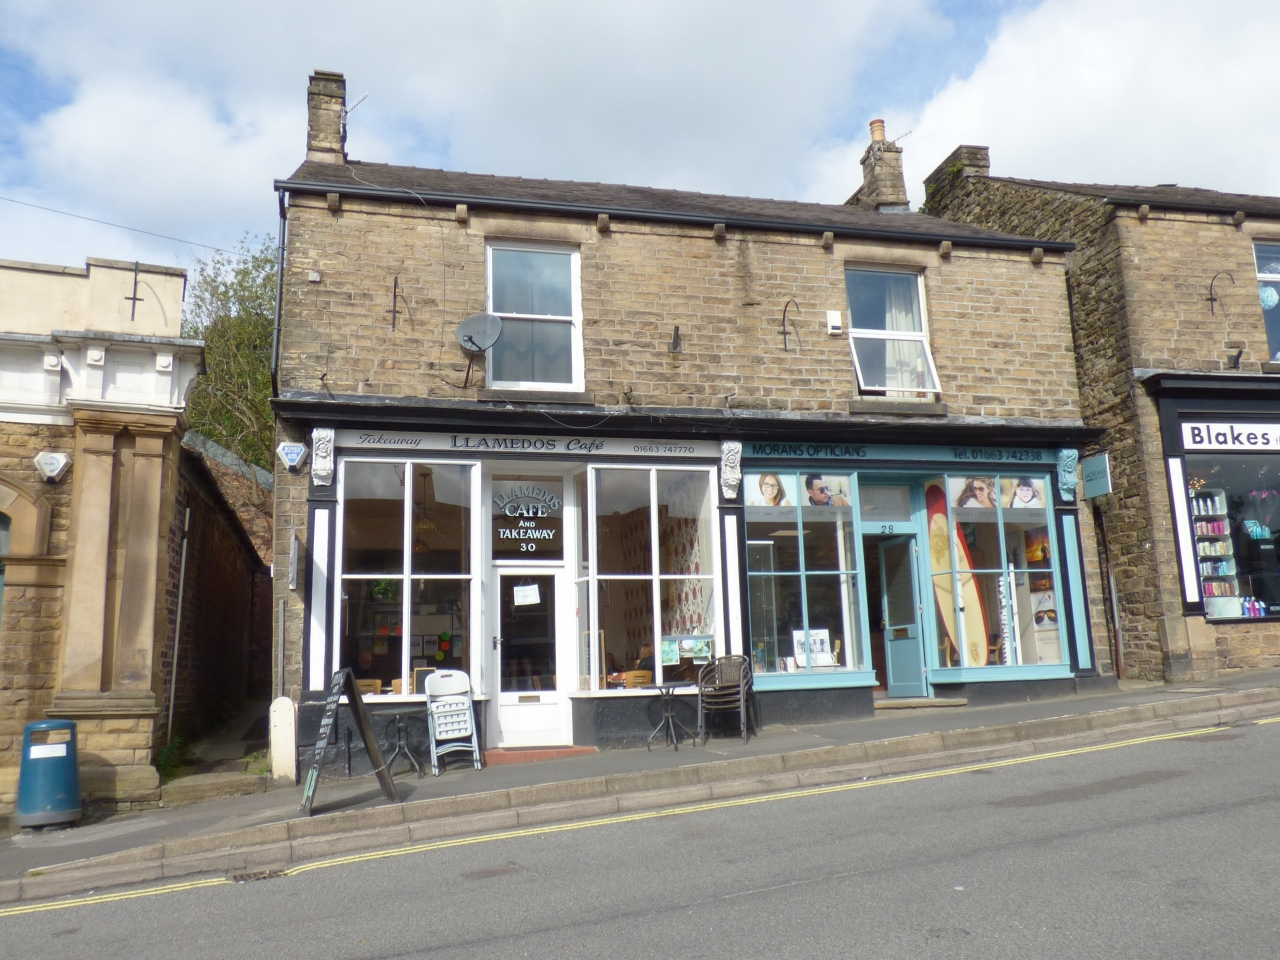 2 Bedroom Retail Property (high Street) For Sale - Image 1